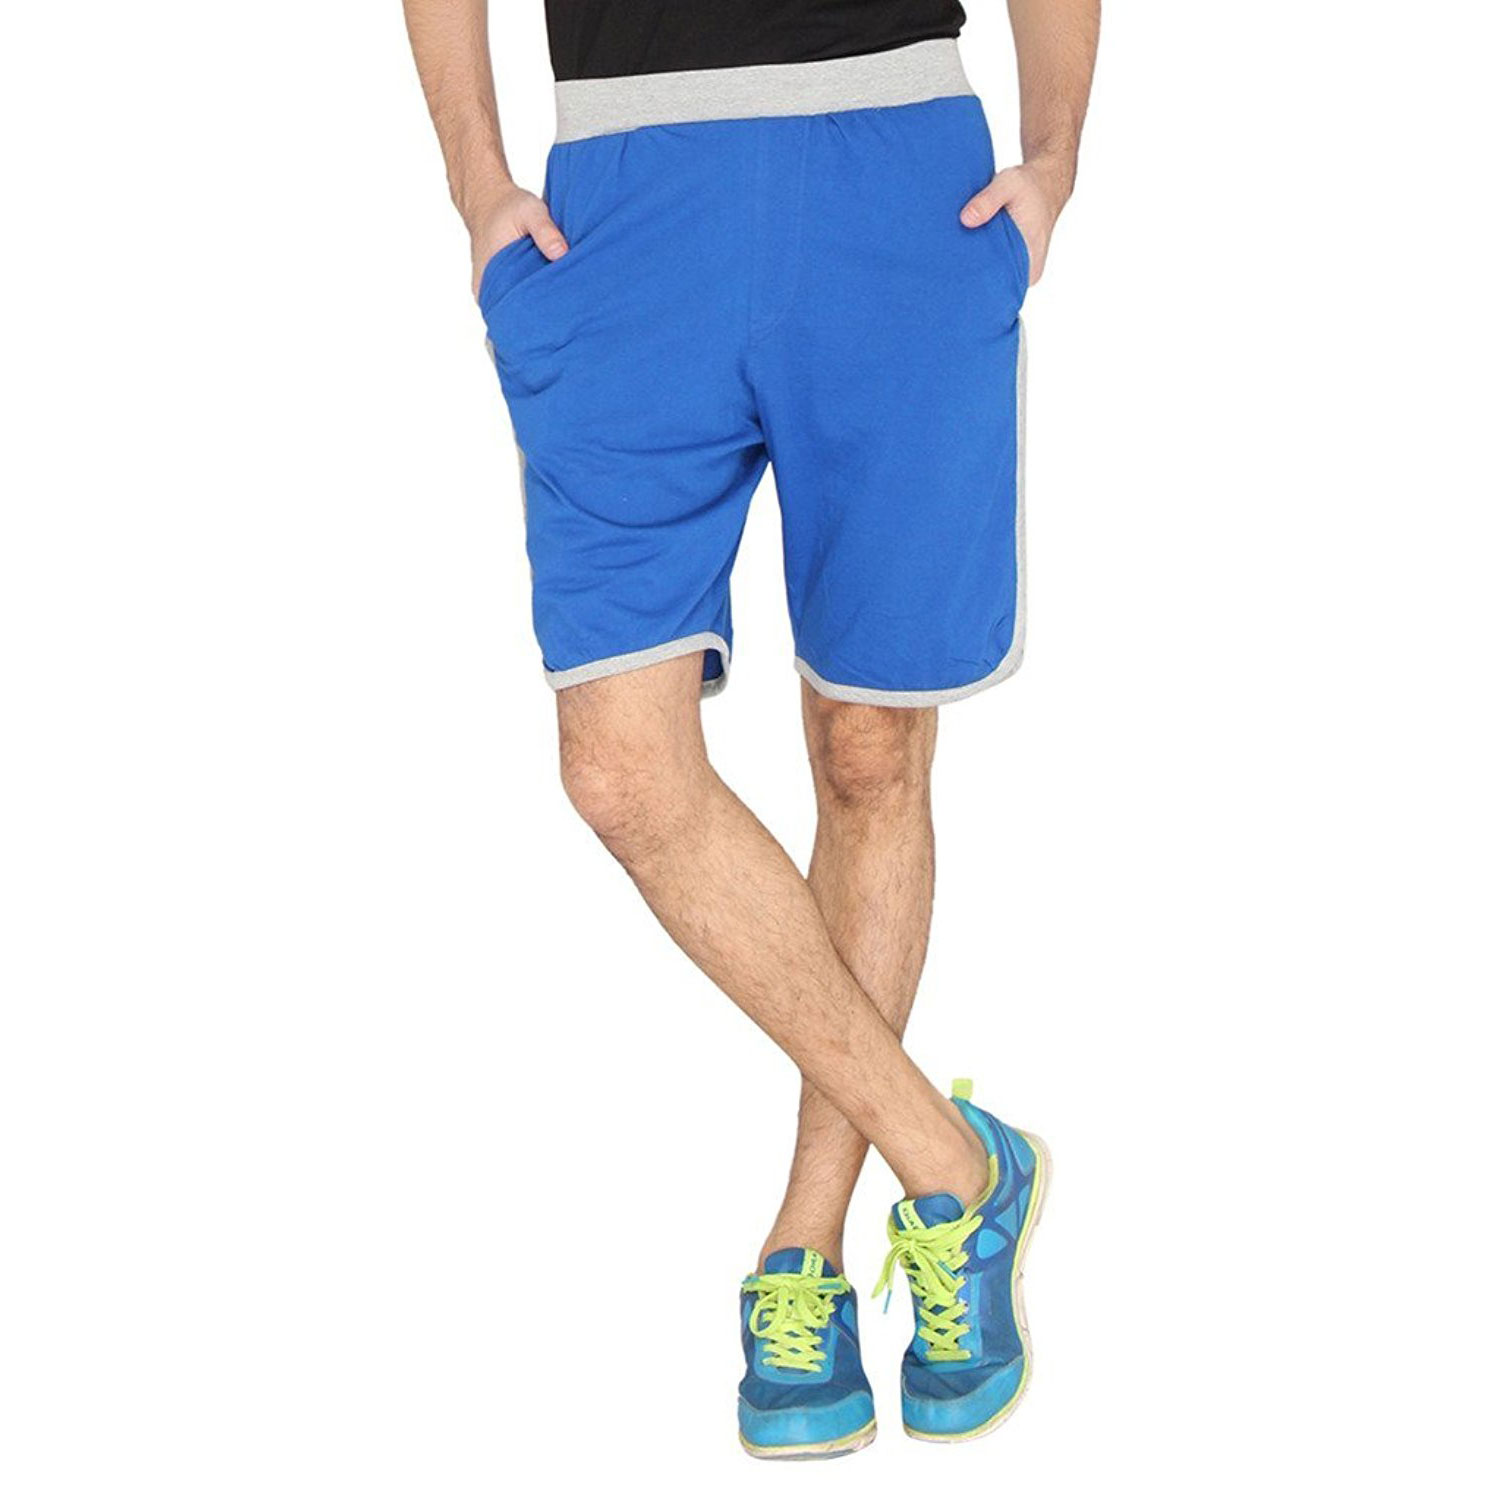 LUCfashion Men's Exclusive Premium Fashionable Sports Shorts